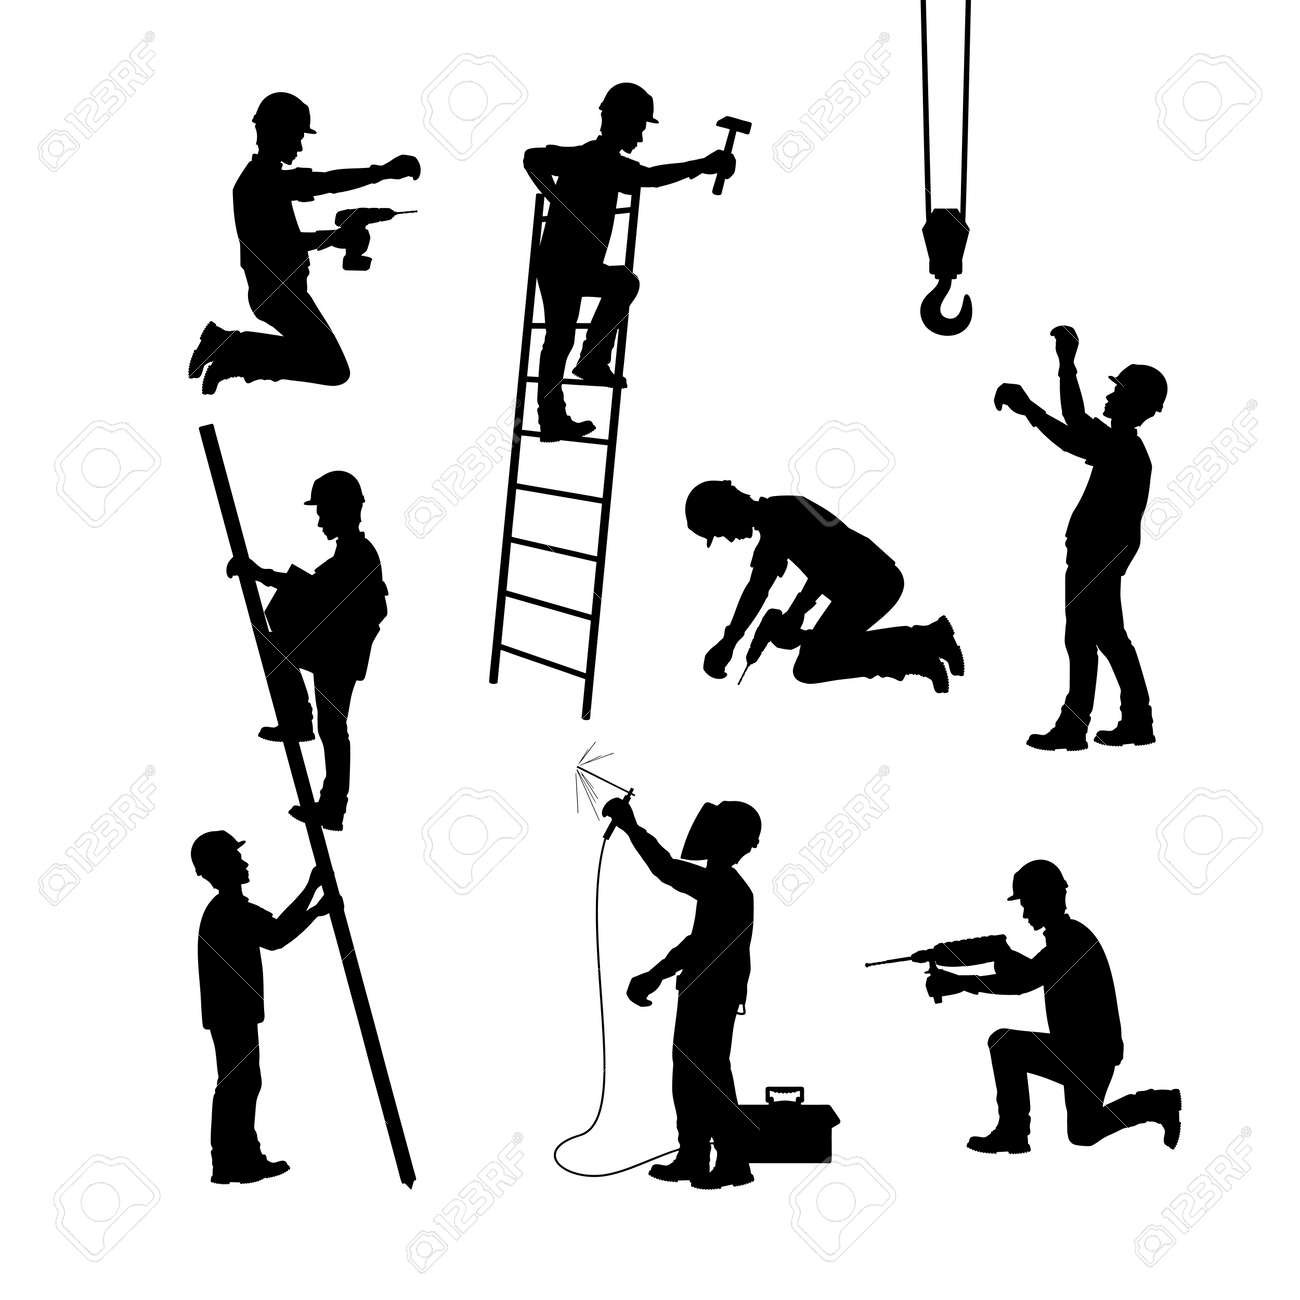 A construction worker at work. Silhouettes in different poses with and without tools. Vector illustration. - 96137769